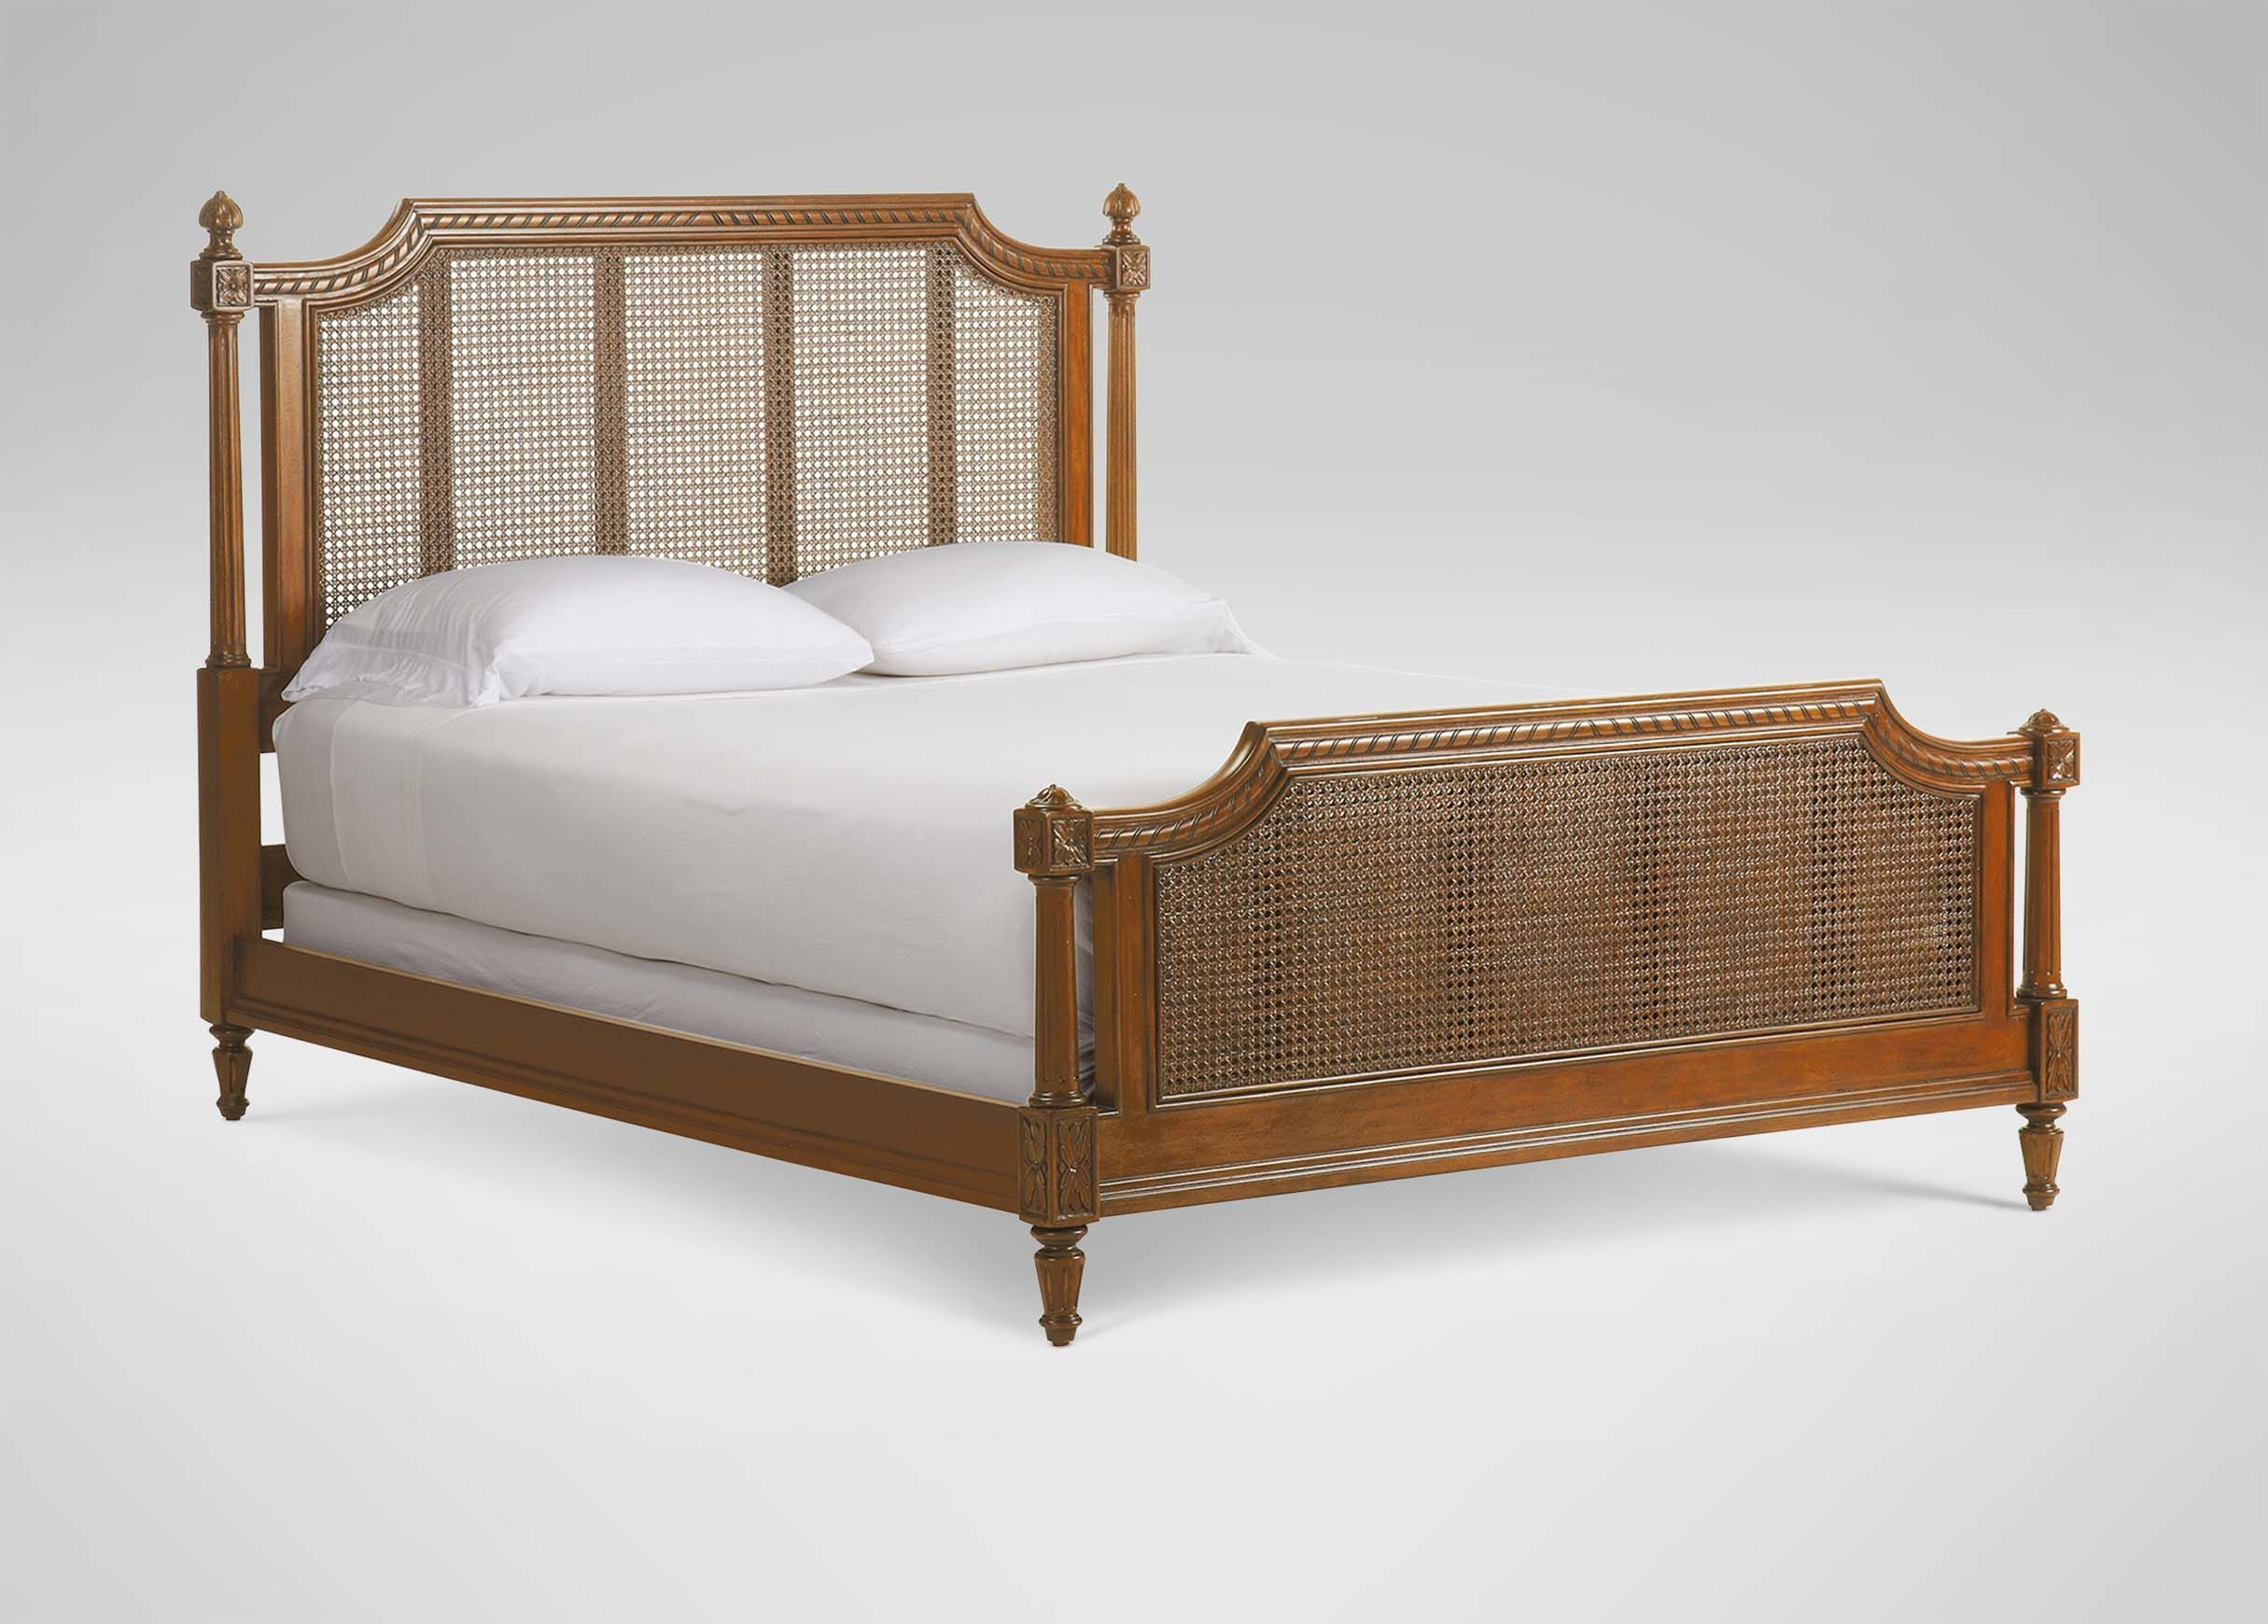 Elise Bed With Images Bed King Bed Frame Queen Size Bed Frames